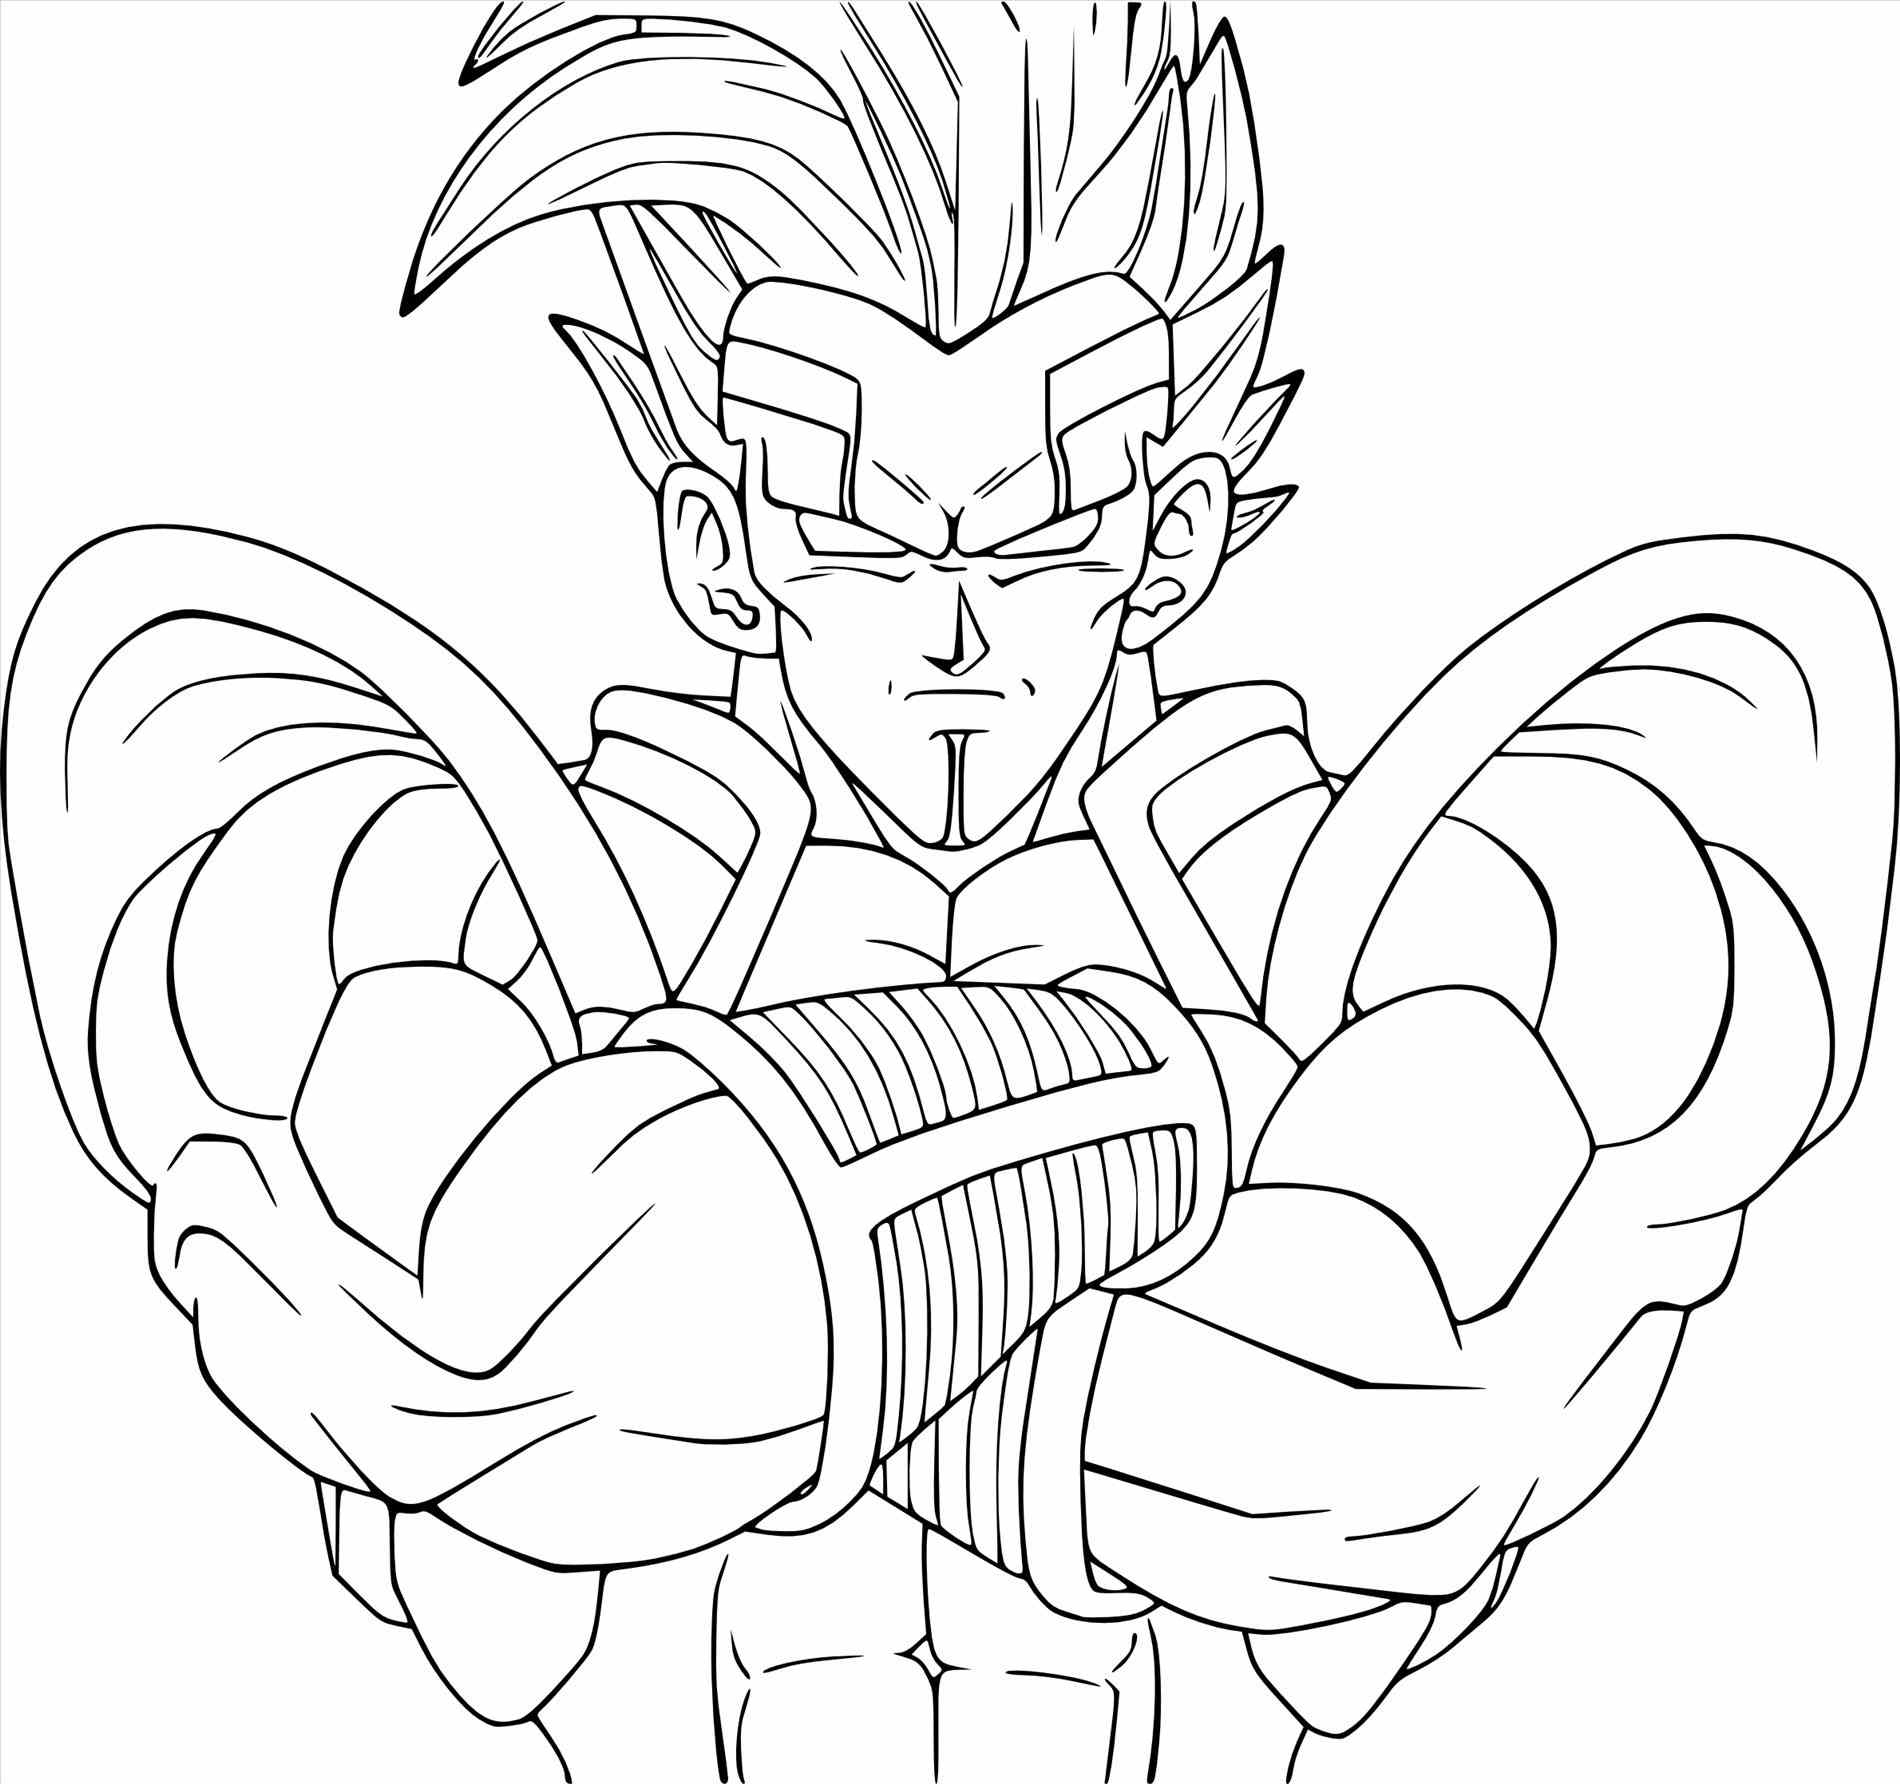 Frieza Coloring Pages At Getcolorings | Free Printable à Coloriage Dragon Ball Z Super